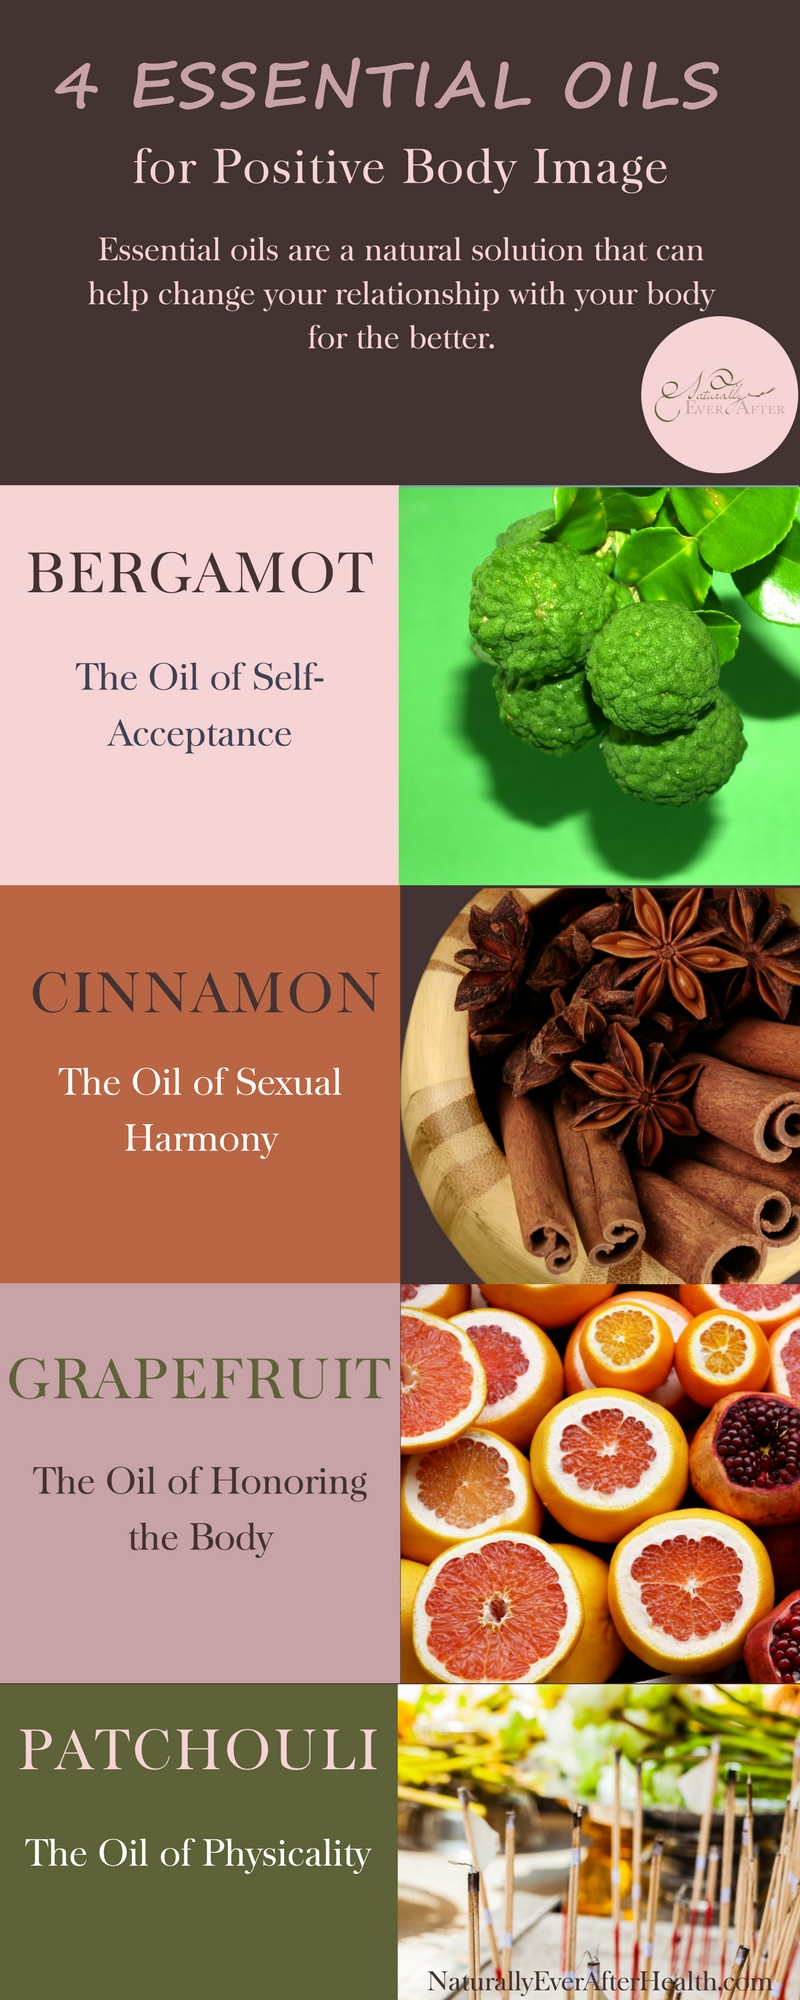 Learn how you can use essential oils to reframe your body image!